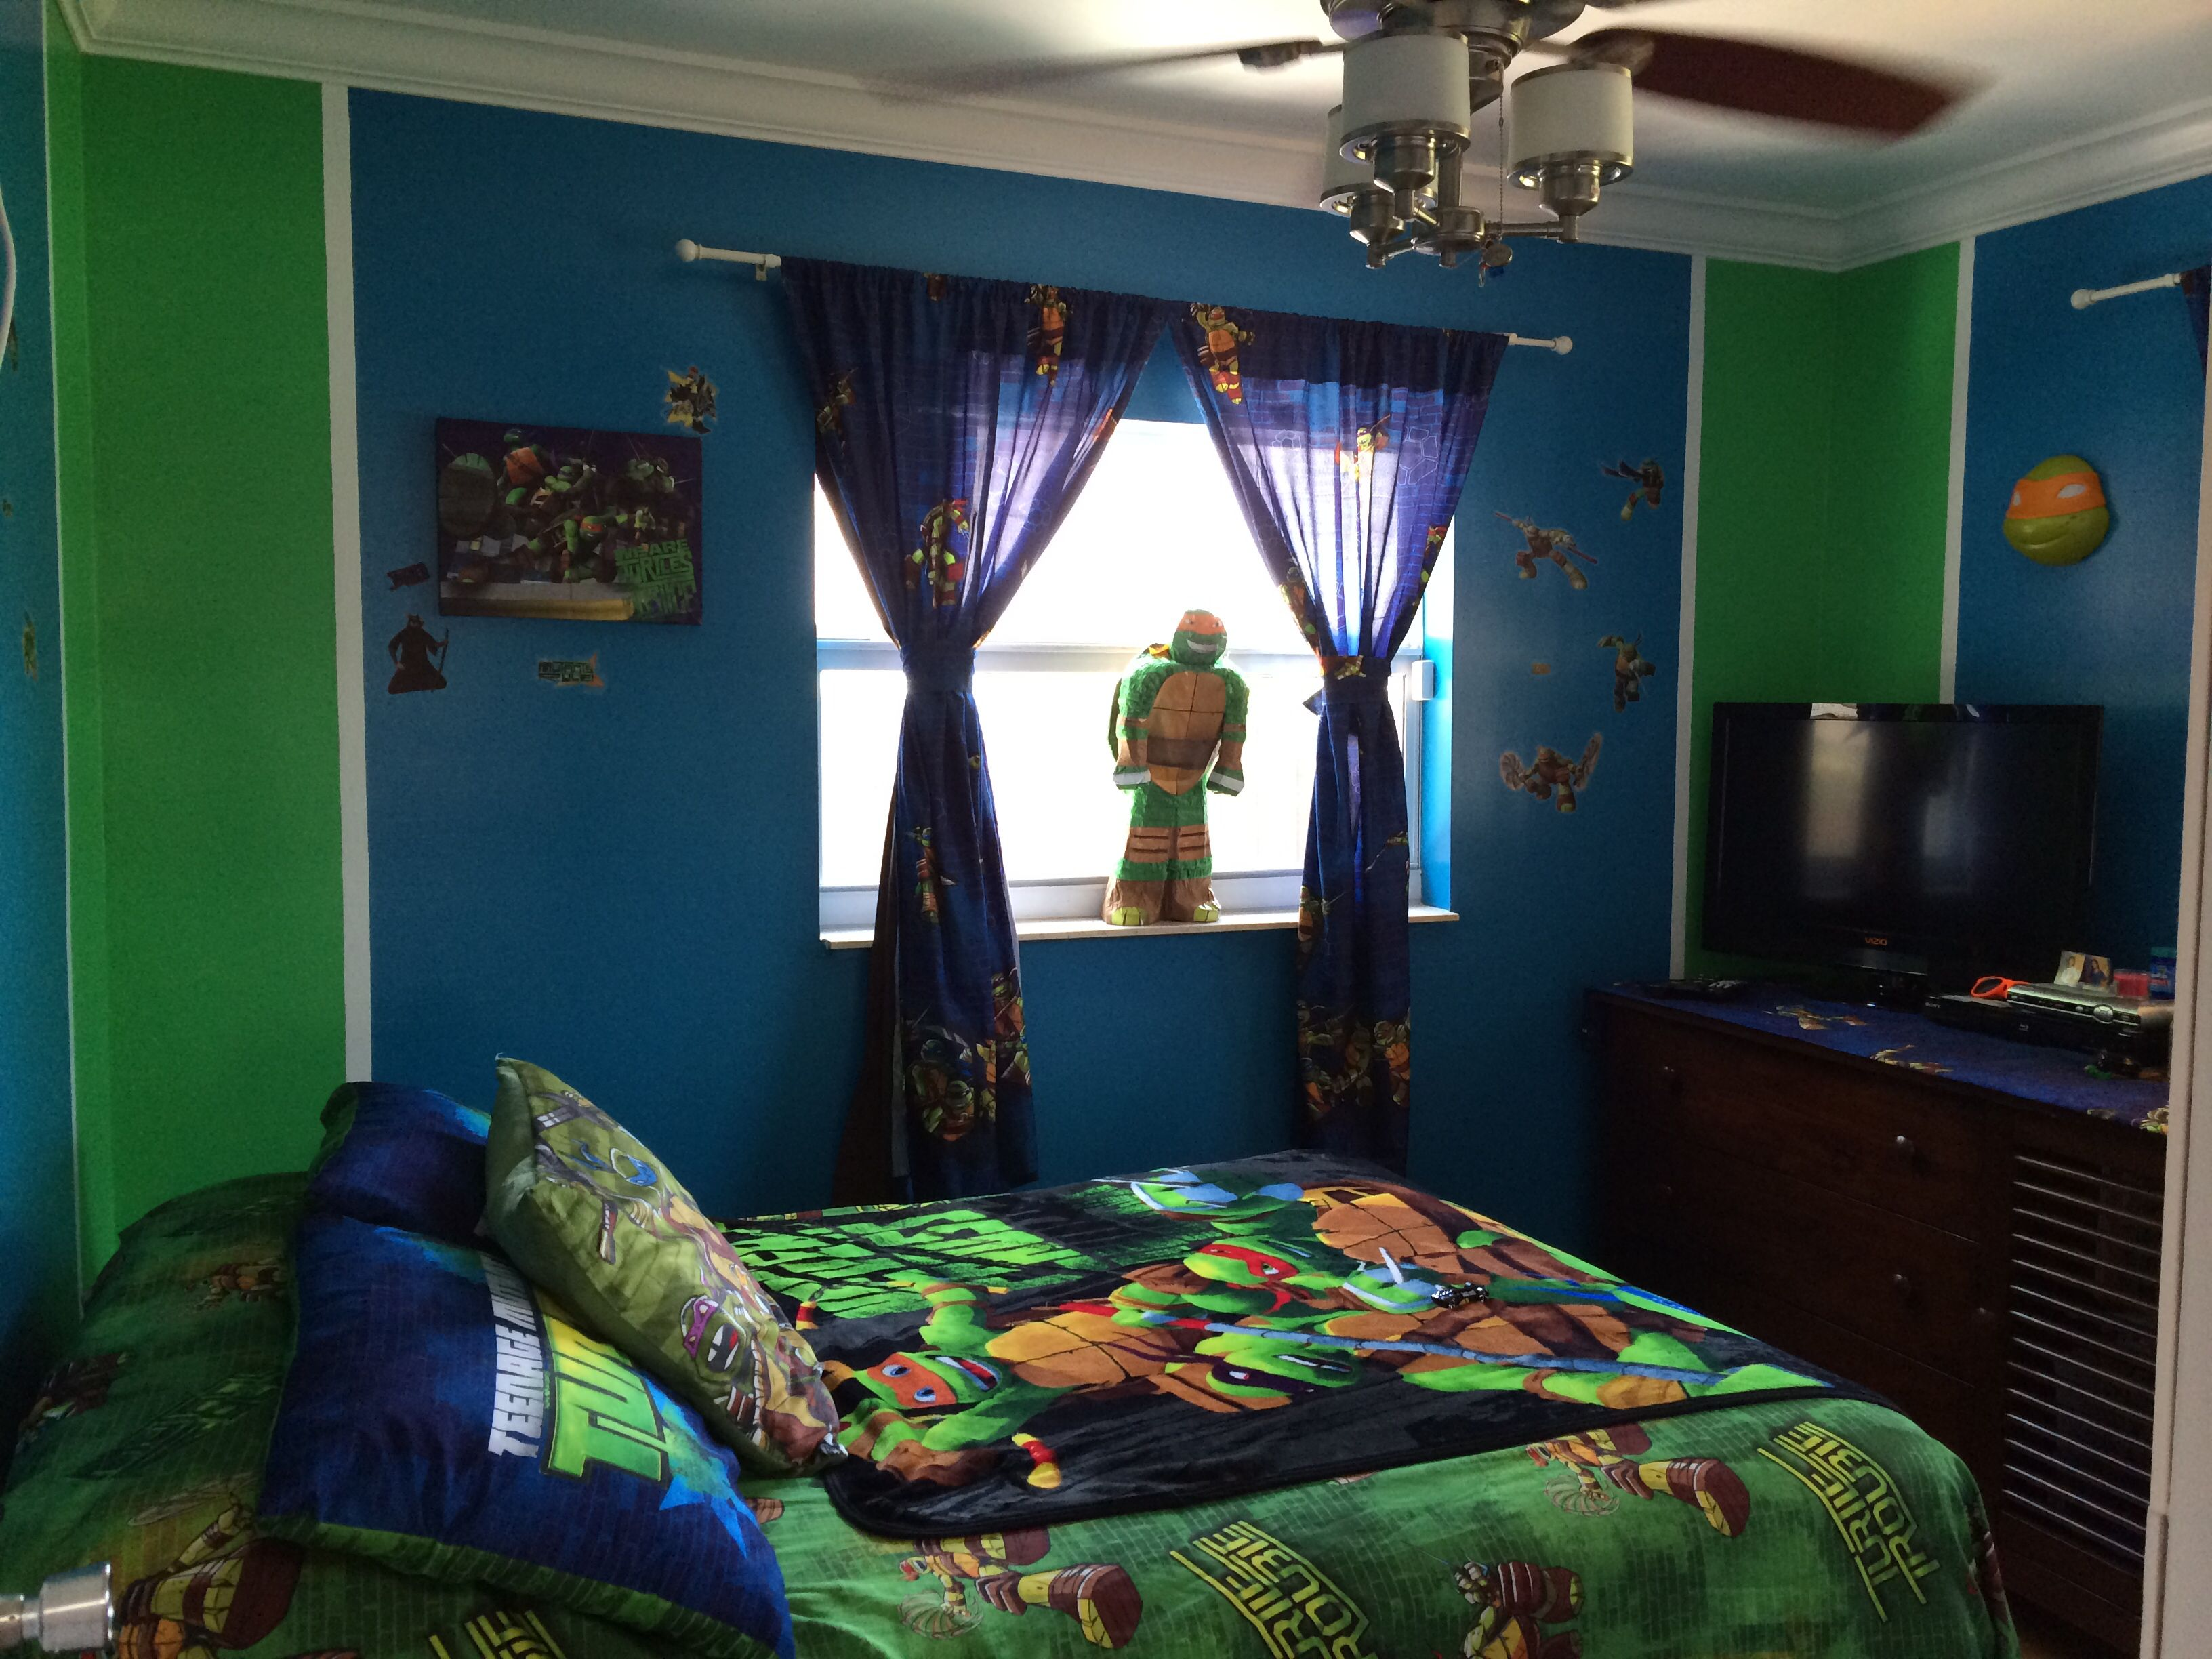 Tmnt room blue and green bedrooms bathrooms for Room decorations